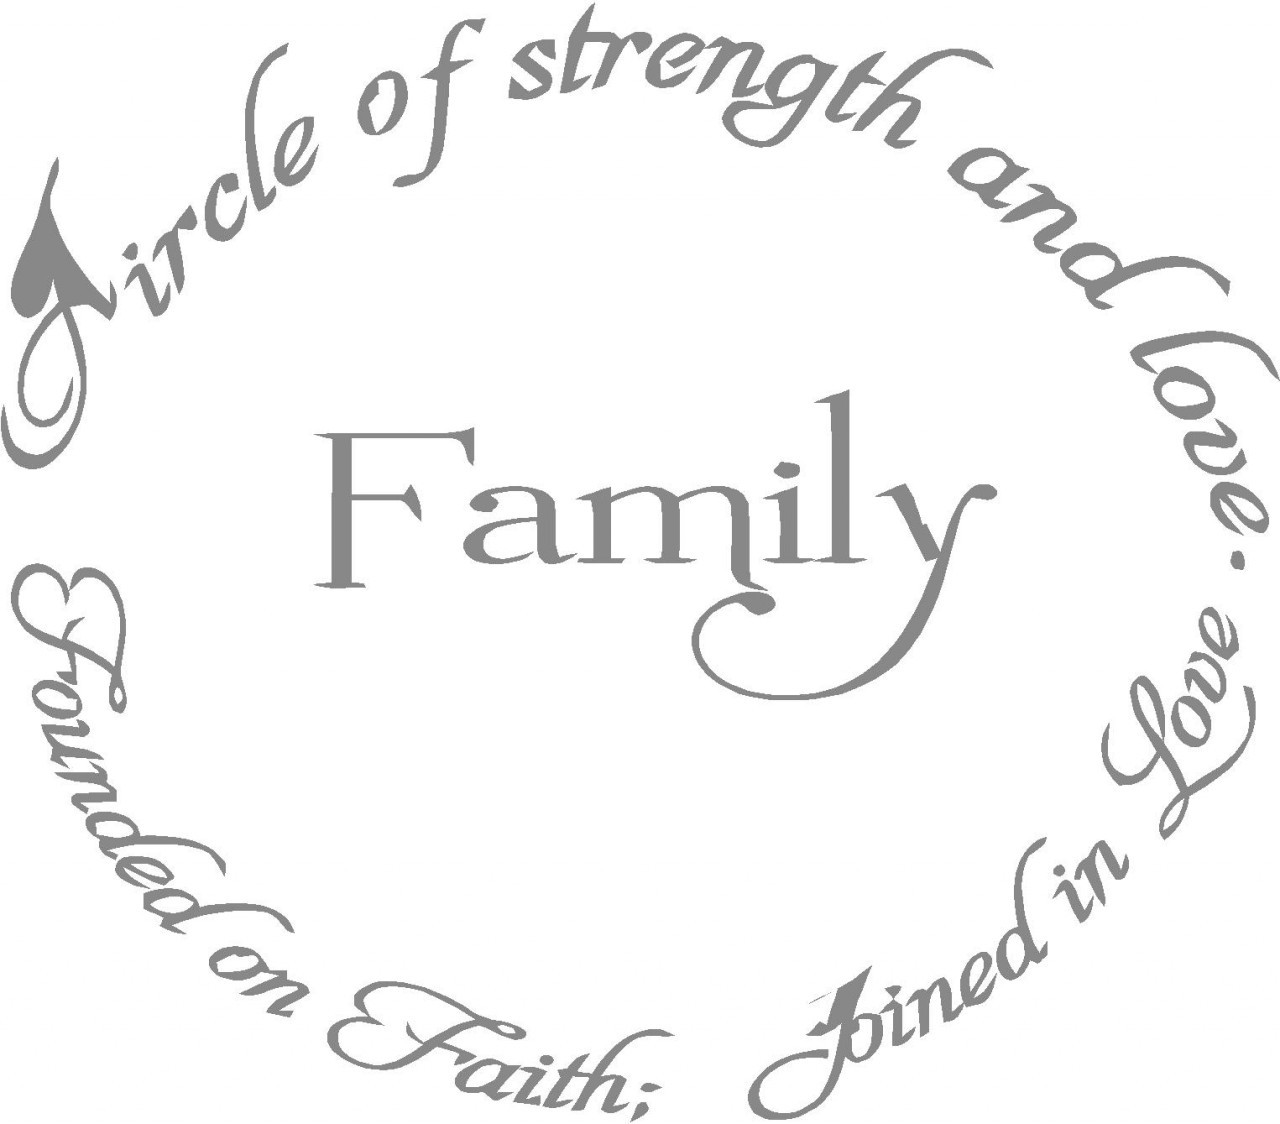 Family Quotes Love: Bible Quotes About Family Strength. QuotesGram